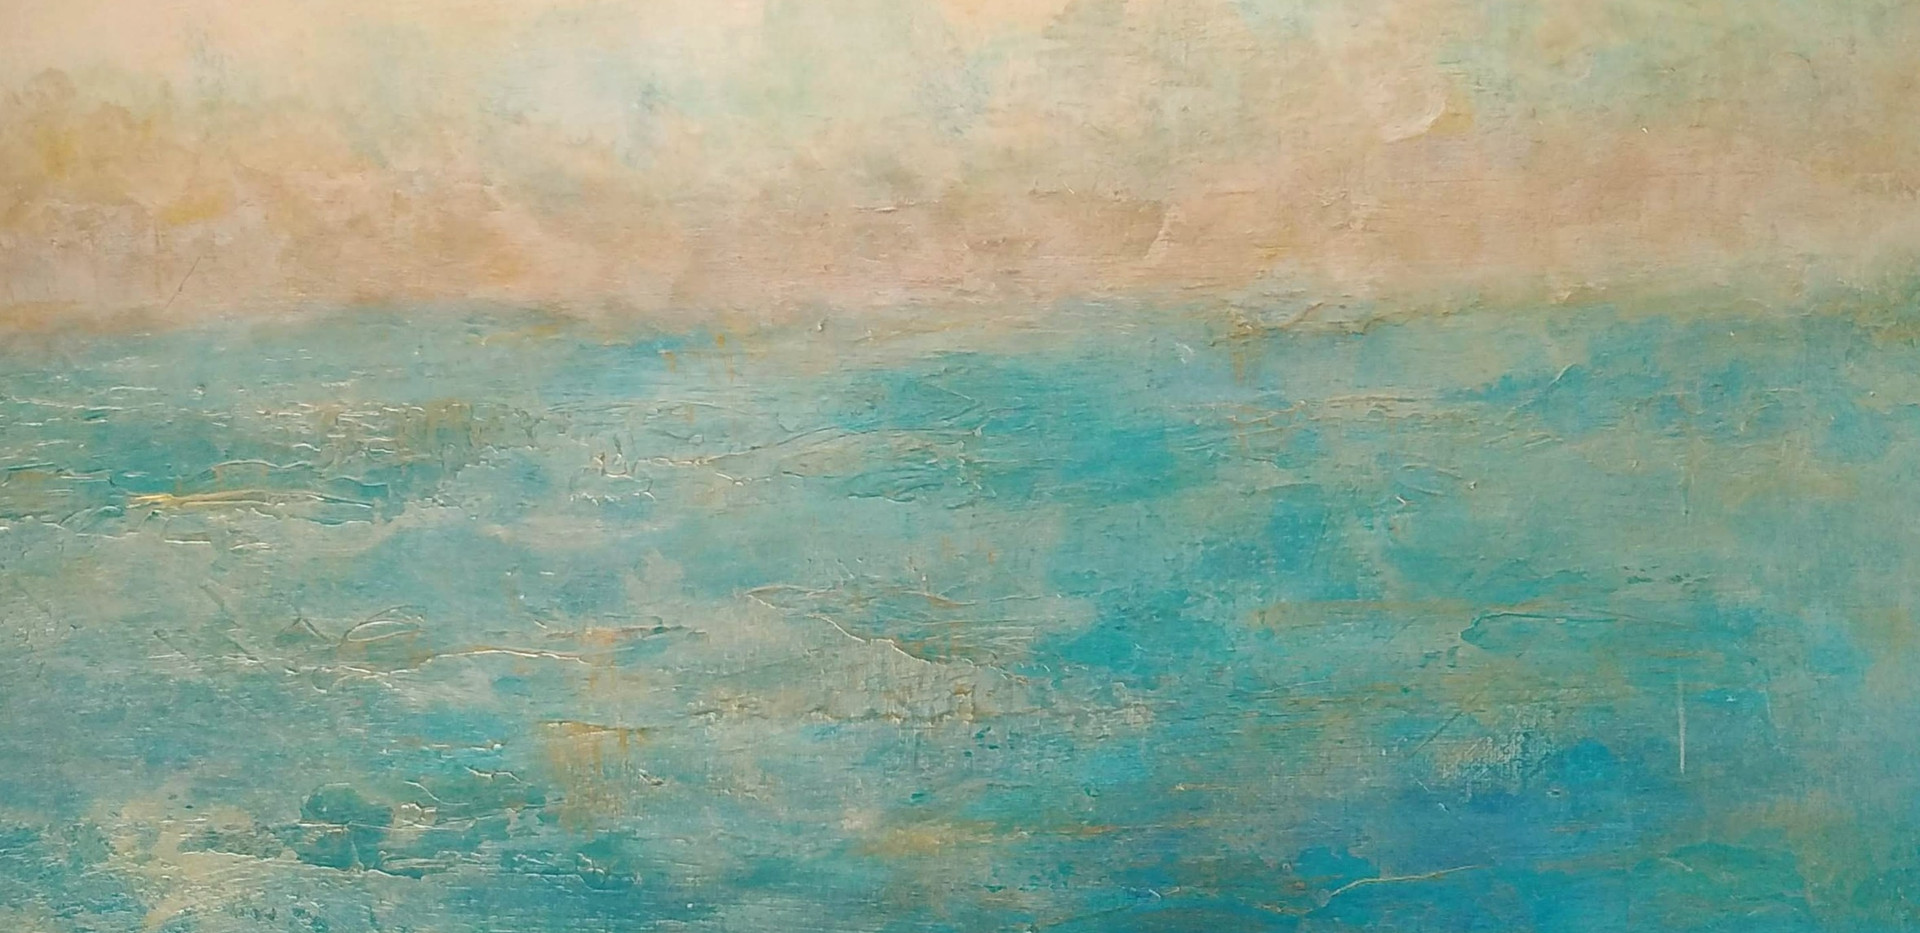 Abstract Seascape Acrylic on Canvas 40x50cm SOLD